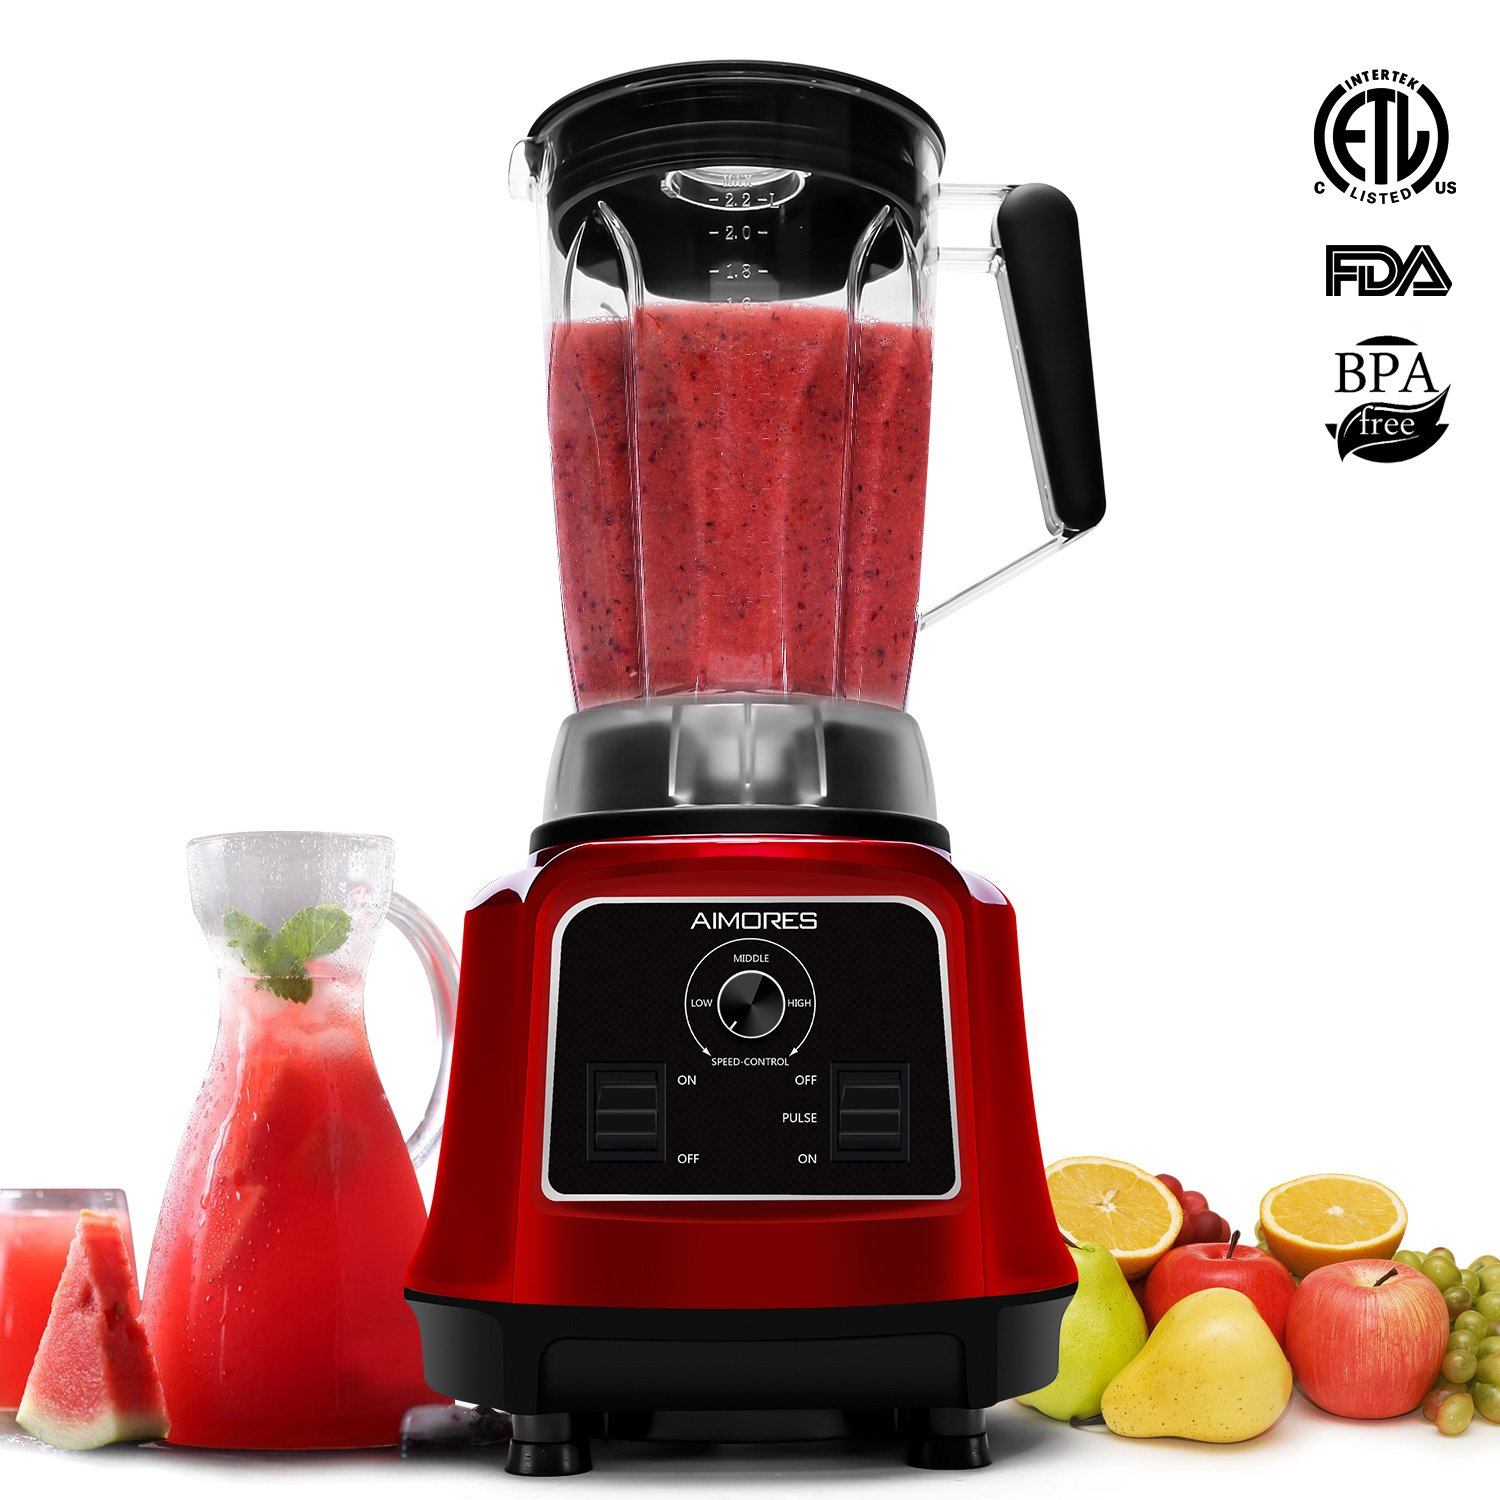 Professional Blender Aimores for Smoothie | 750z. High Speed Juicer, Ice Cream Maker | Optimized 6 Sharp Blades | Auto Clean & Simple Control | Recipe & Tamper | ETL & FDA Certified (Red) by ISUN